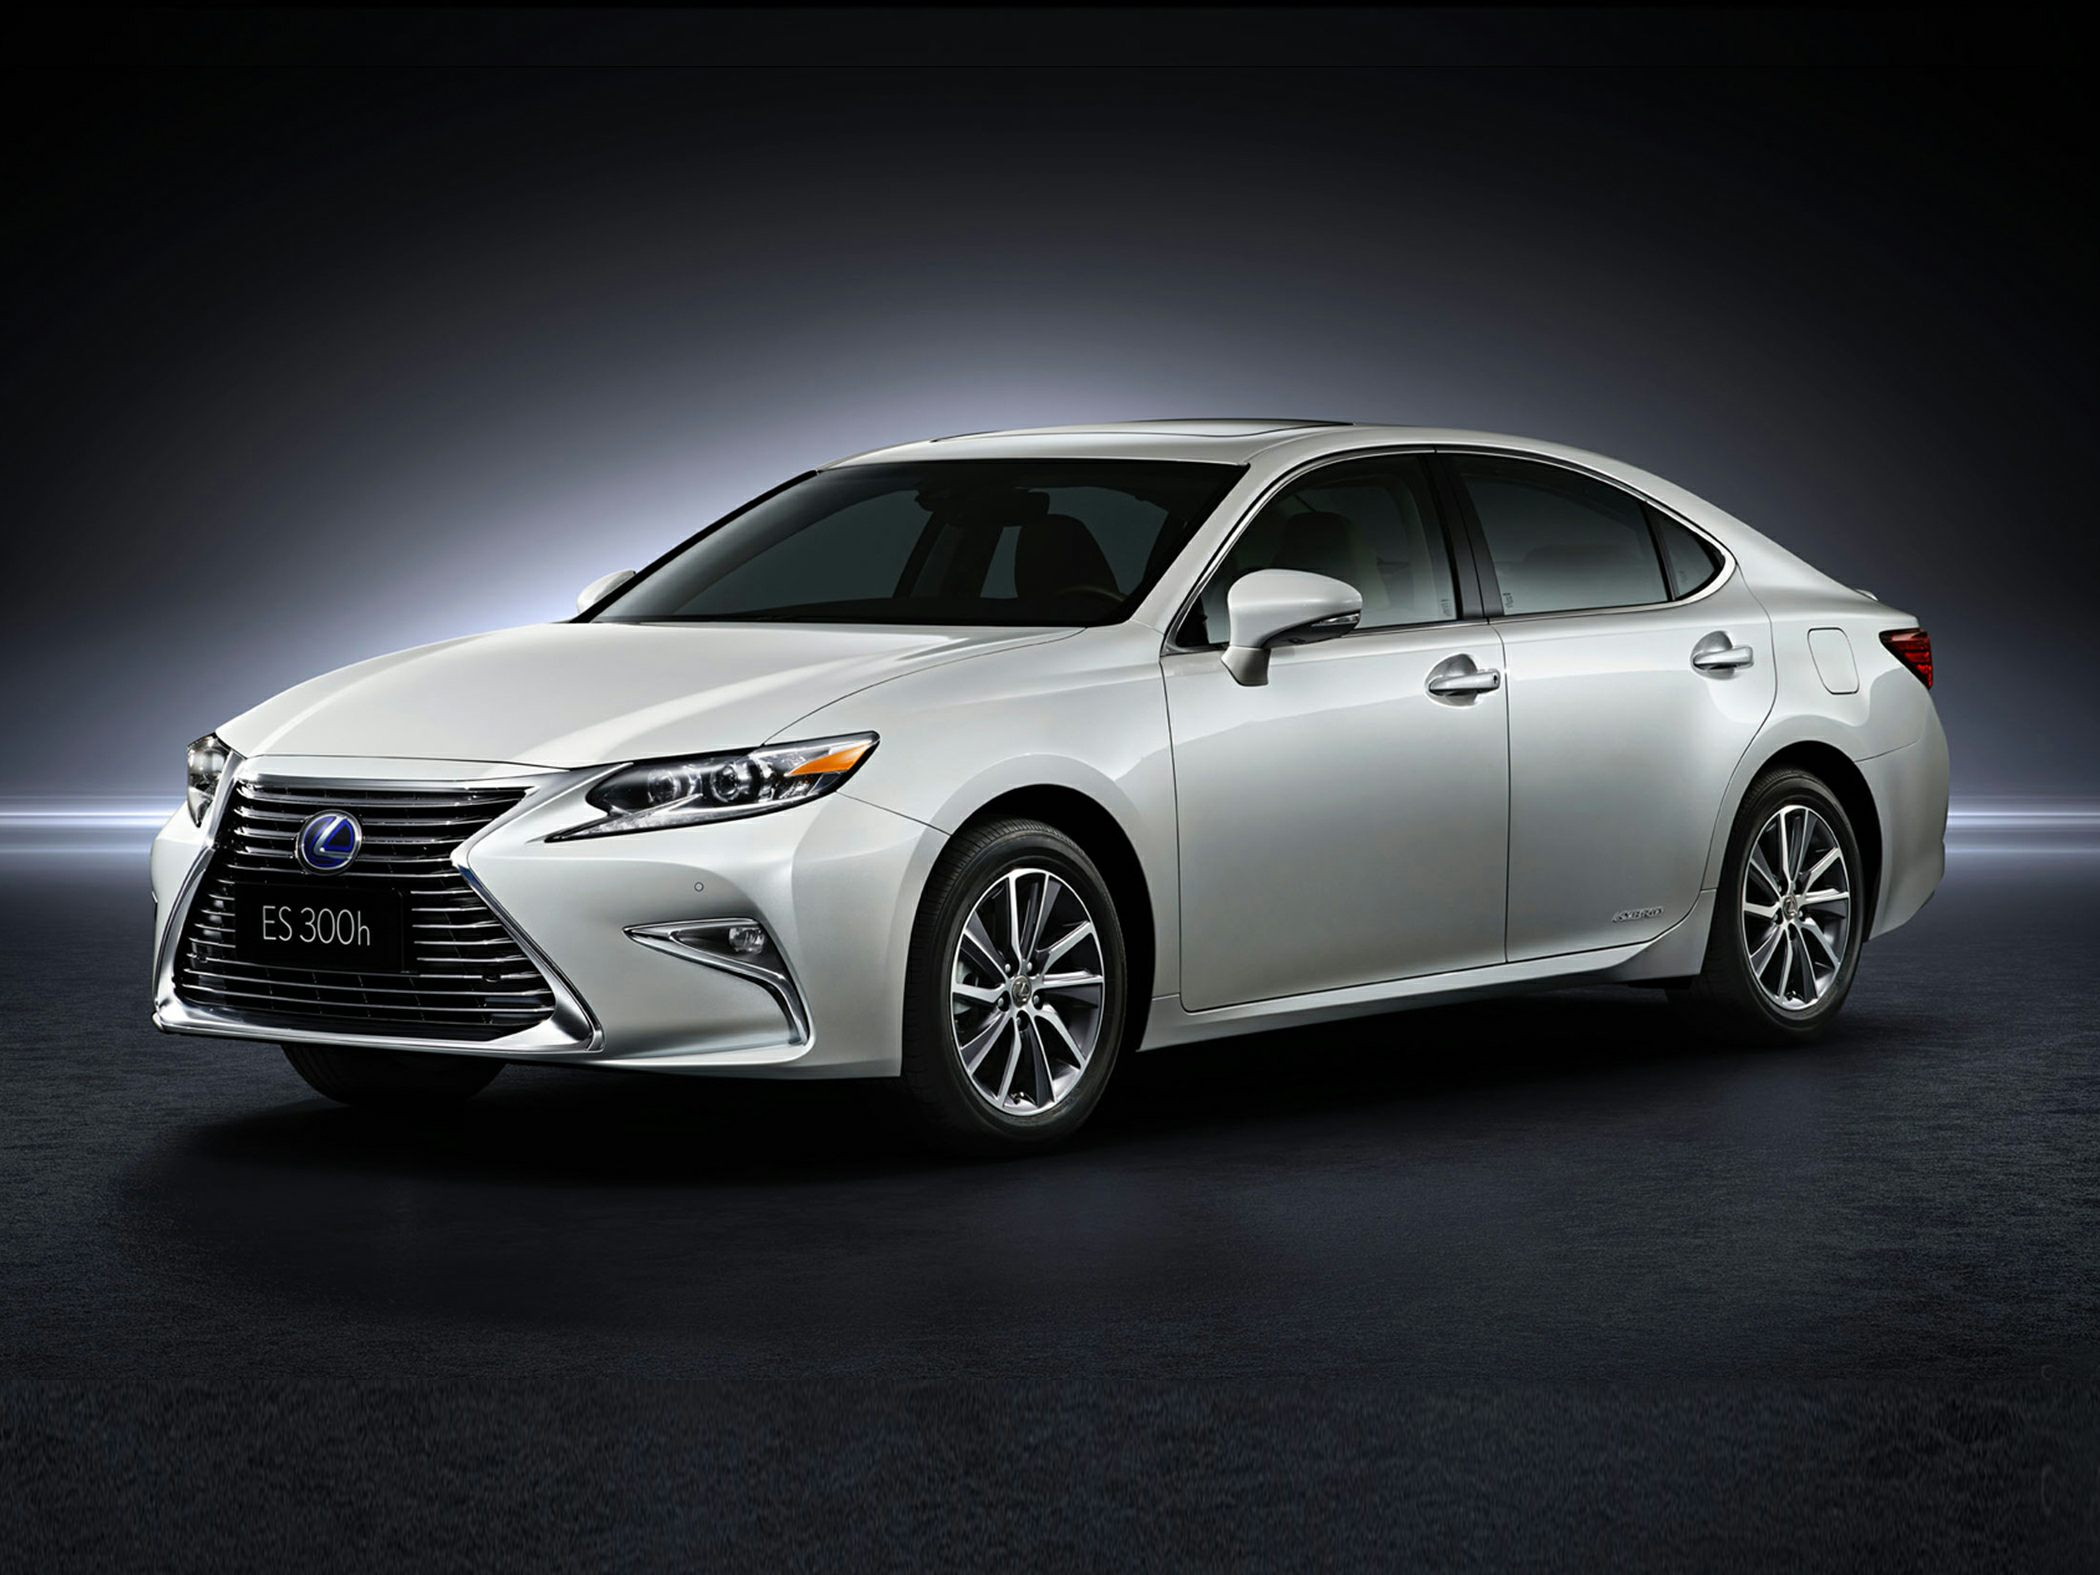 2012 Lexus Es 300h New Cars Used Cars Car Reviews and Pricing